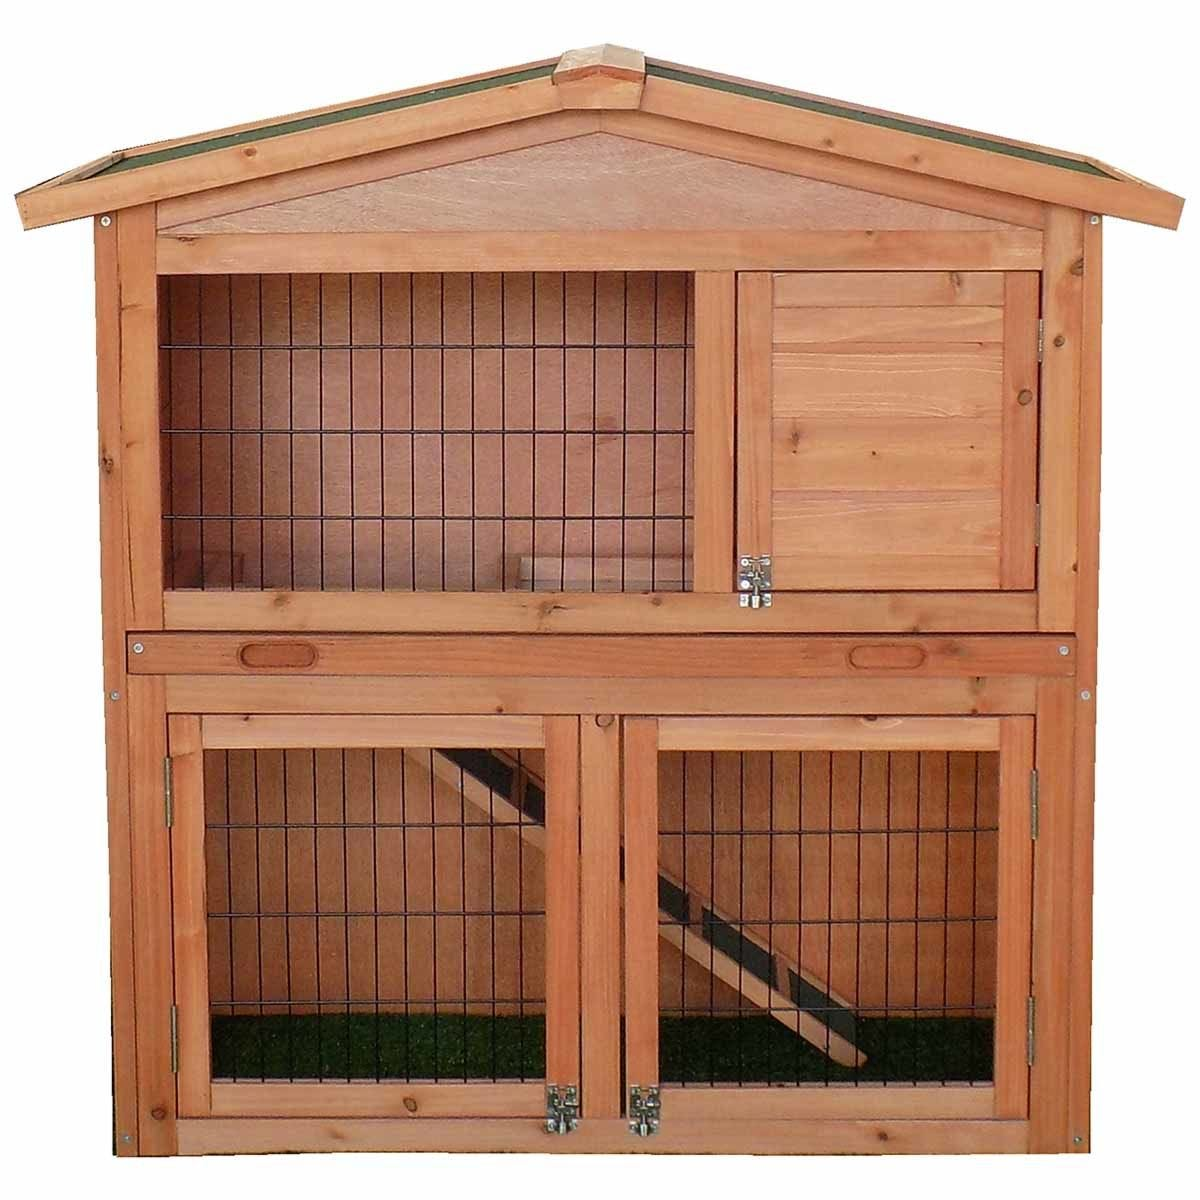 Charles Bentley FSC Two Storey Rabbit Hutch with Play Area - Natural Wood